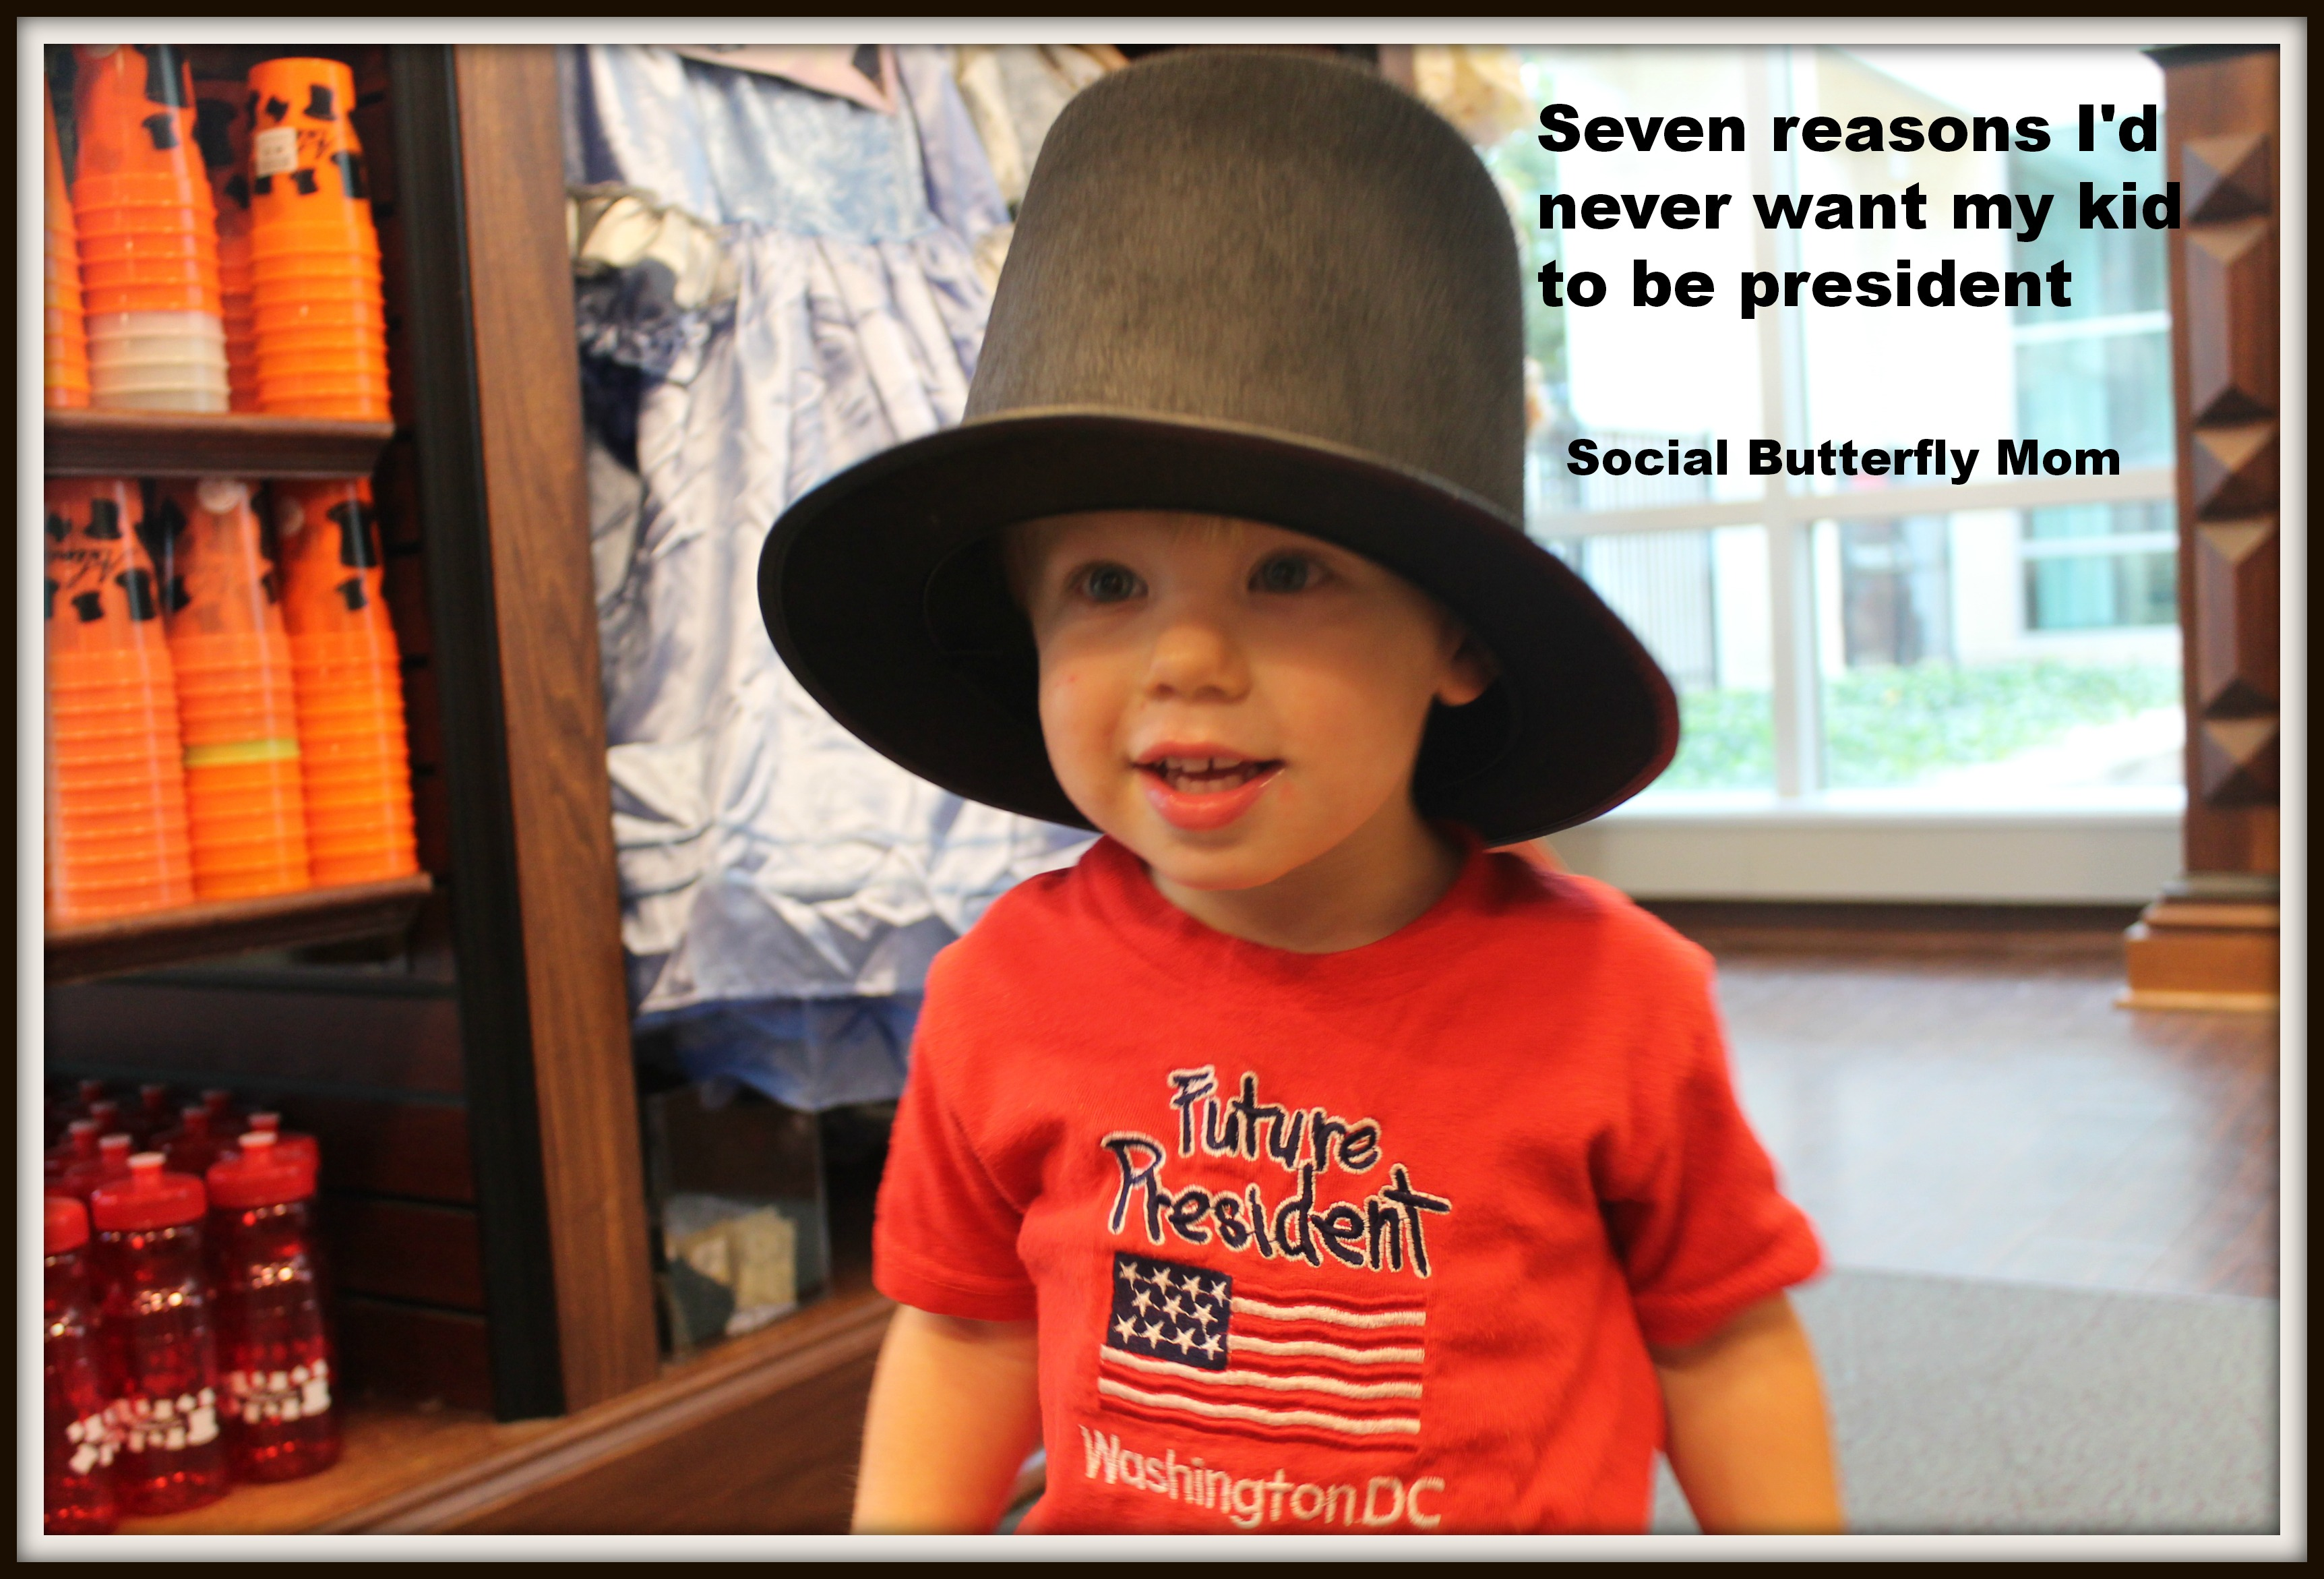 Seven reasons I'd never want my kid to be president